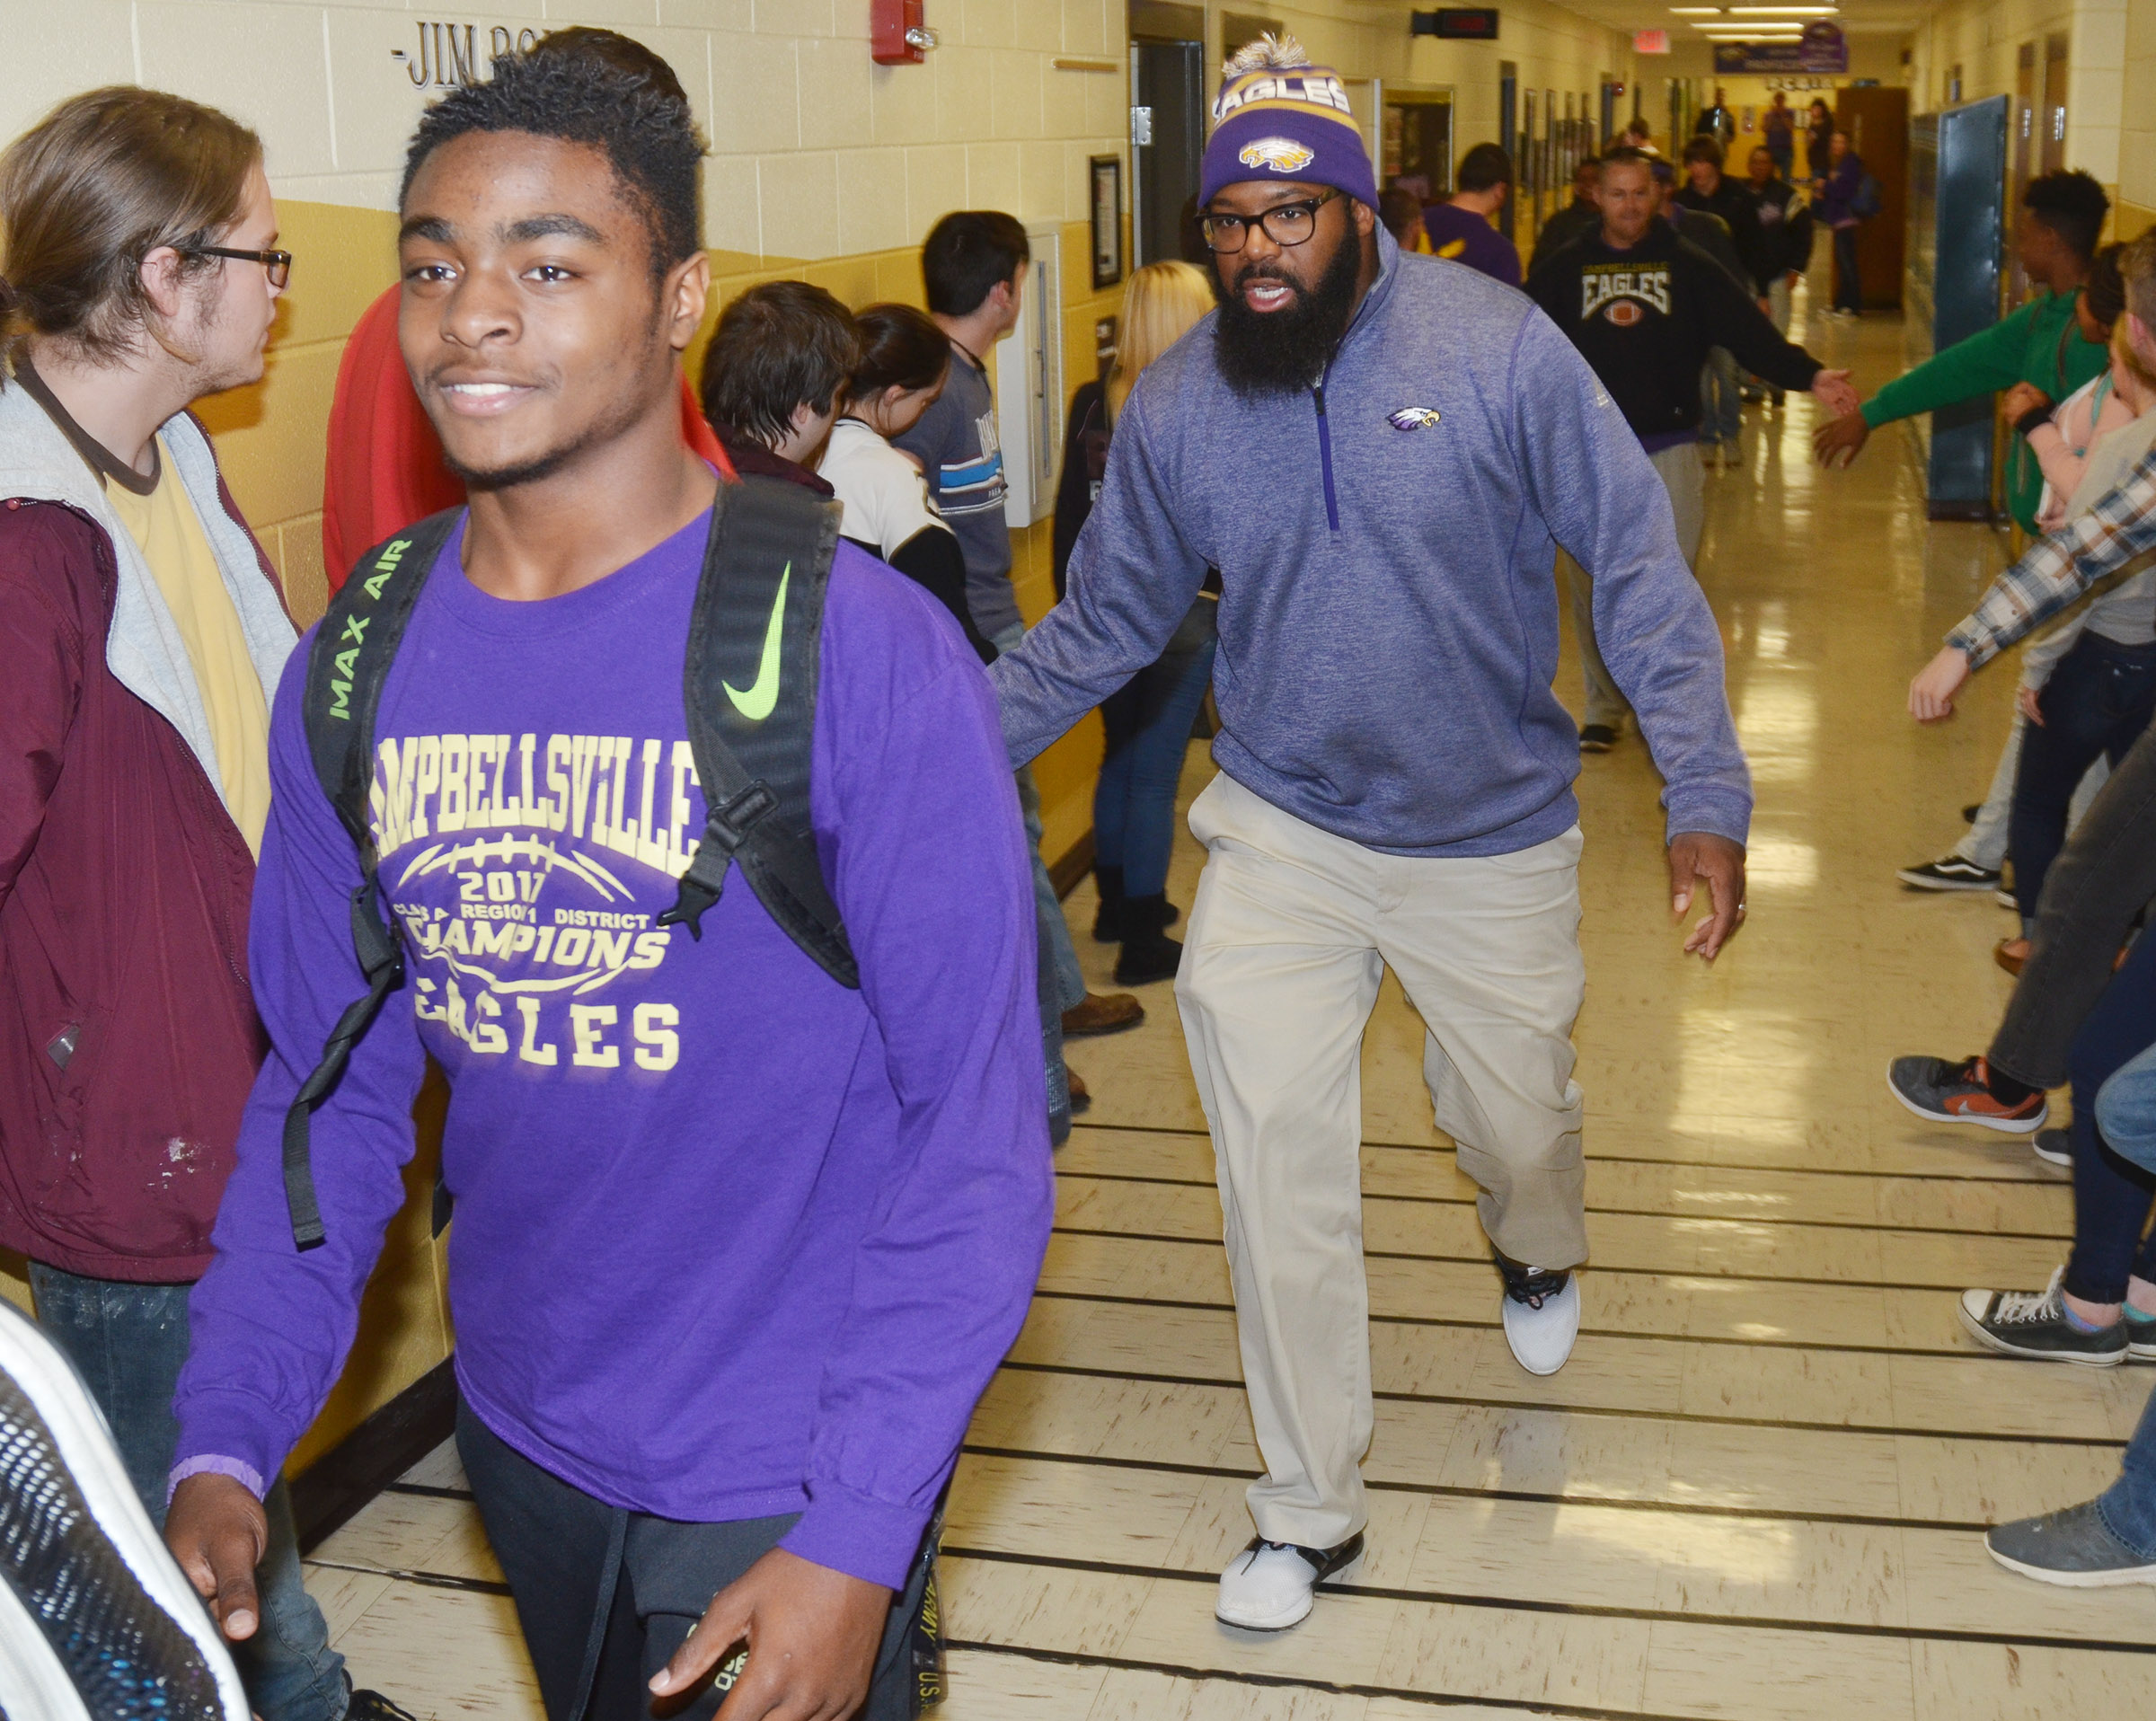 CHS junior Charlie Pettigrew and assistant coach Will Griffin walk through the CHS hallways.